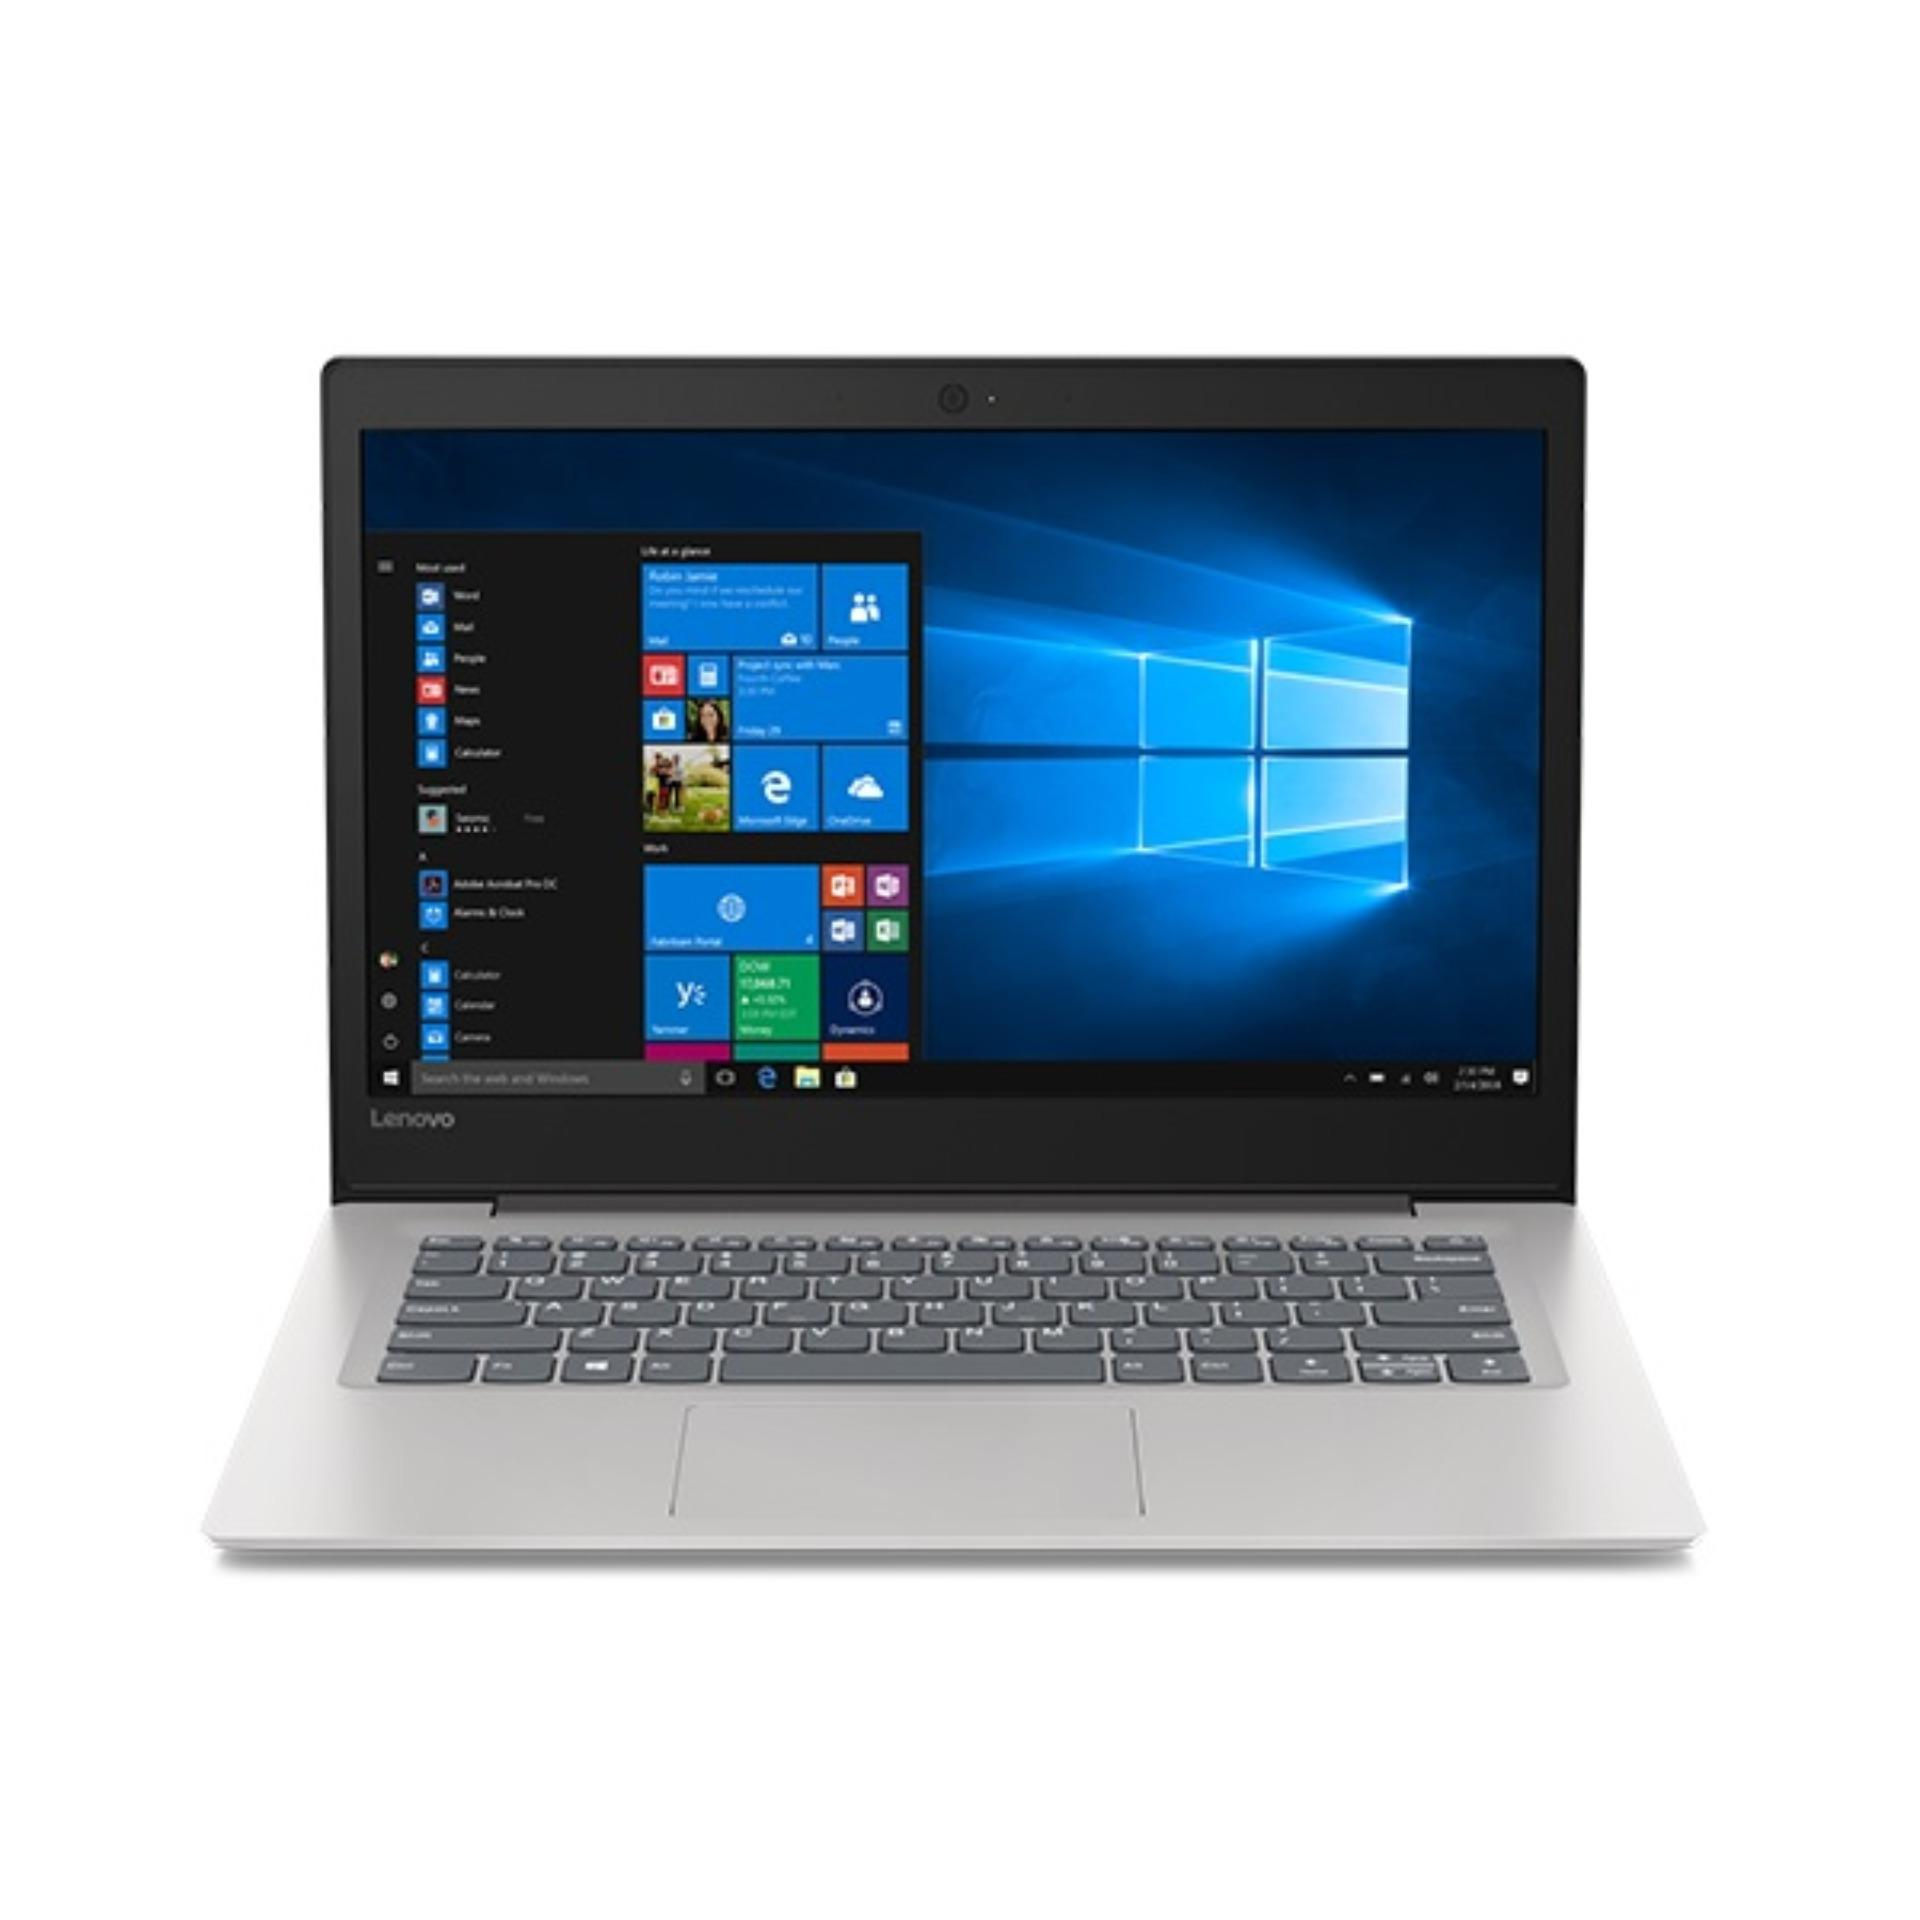 Lenovo Philippines - Lenovo Laptop for sale - prices & reviews | Lazada